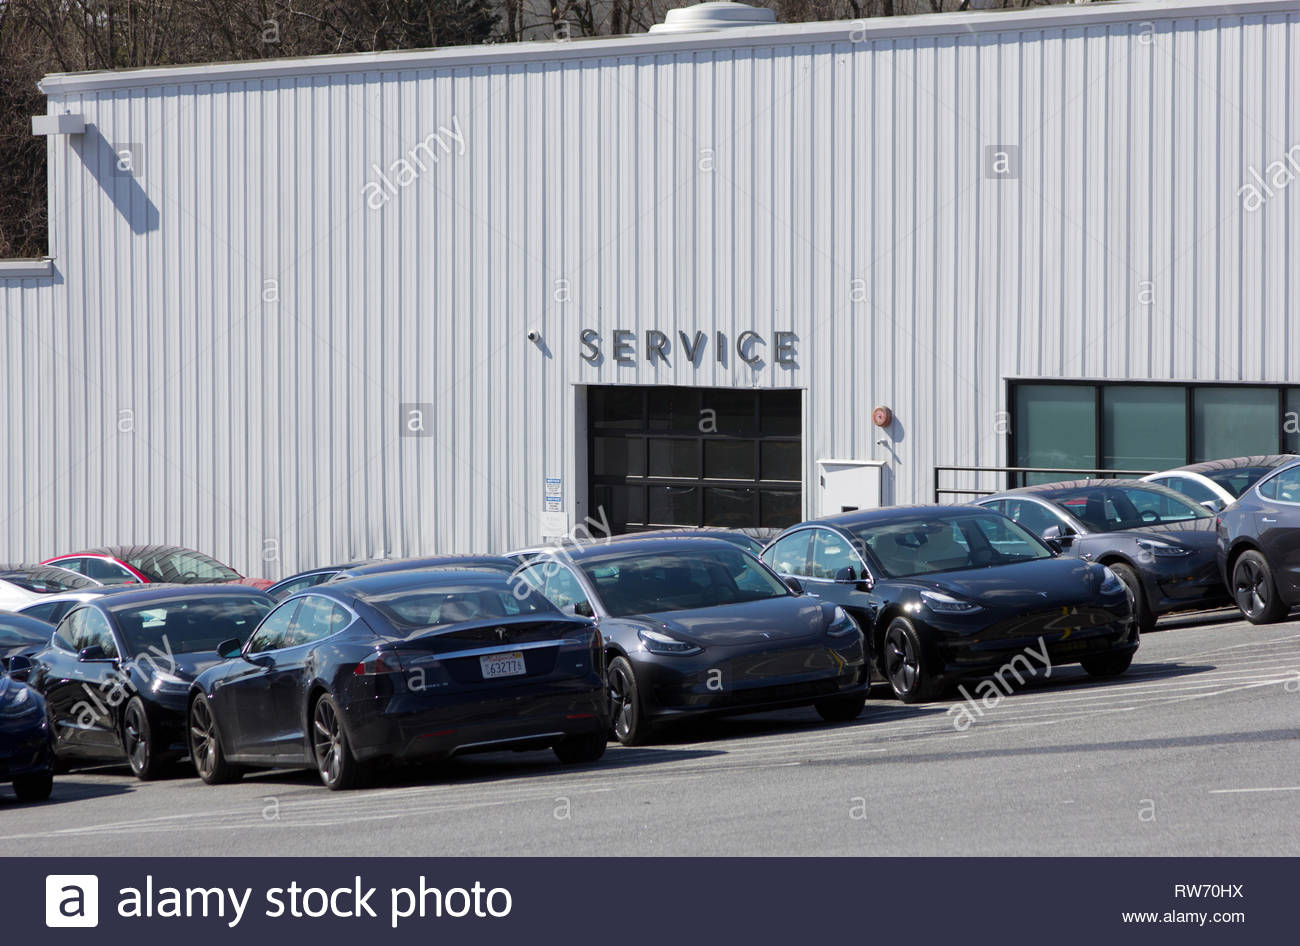 Owings Mills, Maryland, USA. 4th March, 2019. After last week's news by CEO Elon Musk that most Tesla brick-and-mortar locations would be closed as the electric automotive company transitioned solely to online sales, shares ended Monday at their lowest price since 22 October, having dropped about 11 percent since the news, and eliminating nearly $6 billion of market value. Shown is the exterior of the service department and cars on the Tesla store lot in Owings Mills, Maryland. It has not yet been indicated which of the 378 locations worldwide are slated for closure. Kay Howell/Alamy Live News - Stock Image